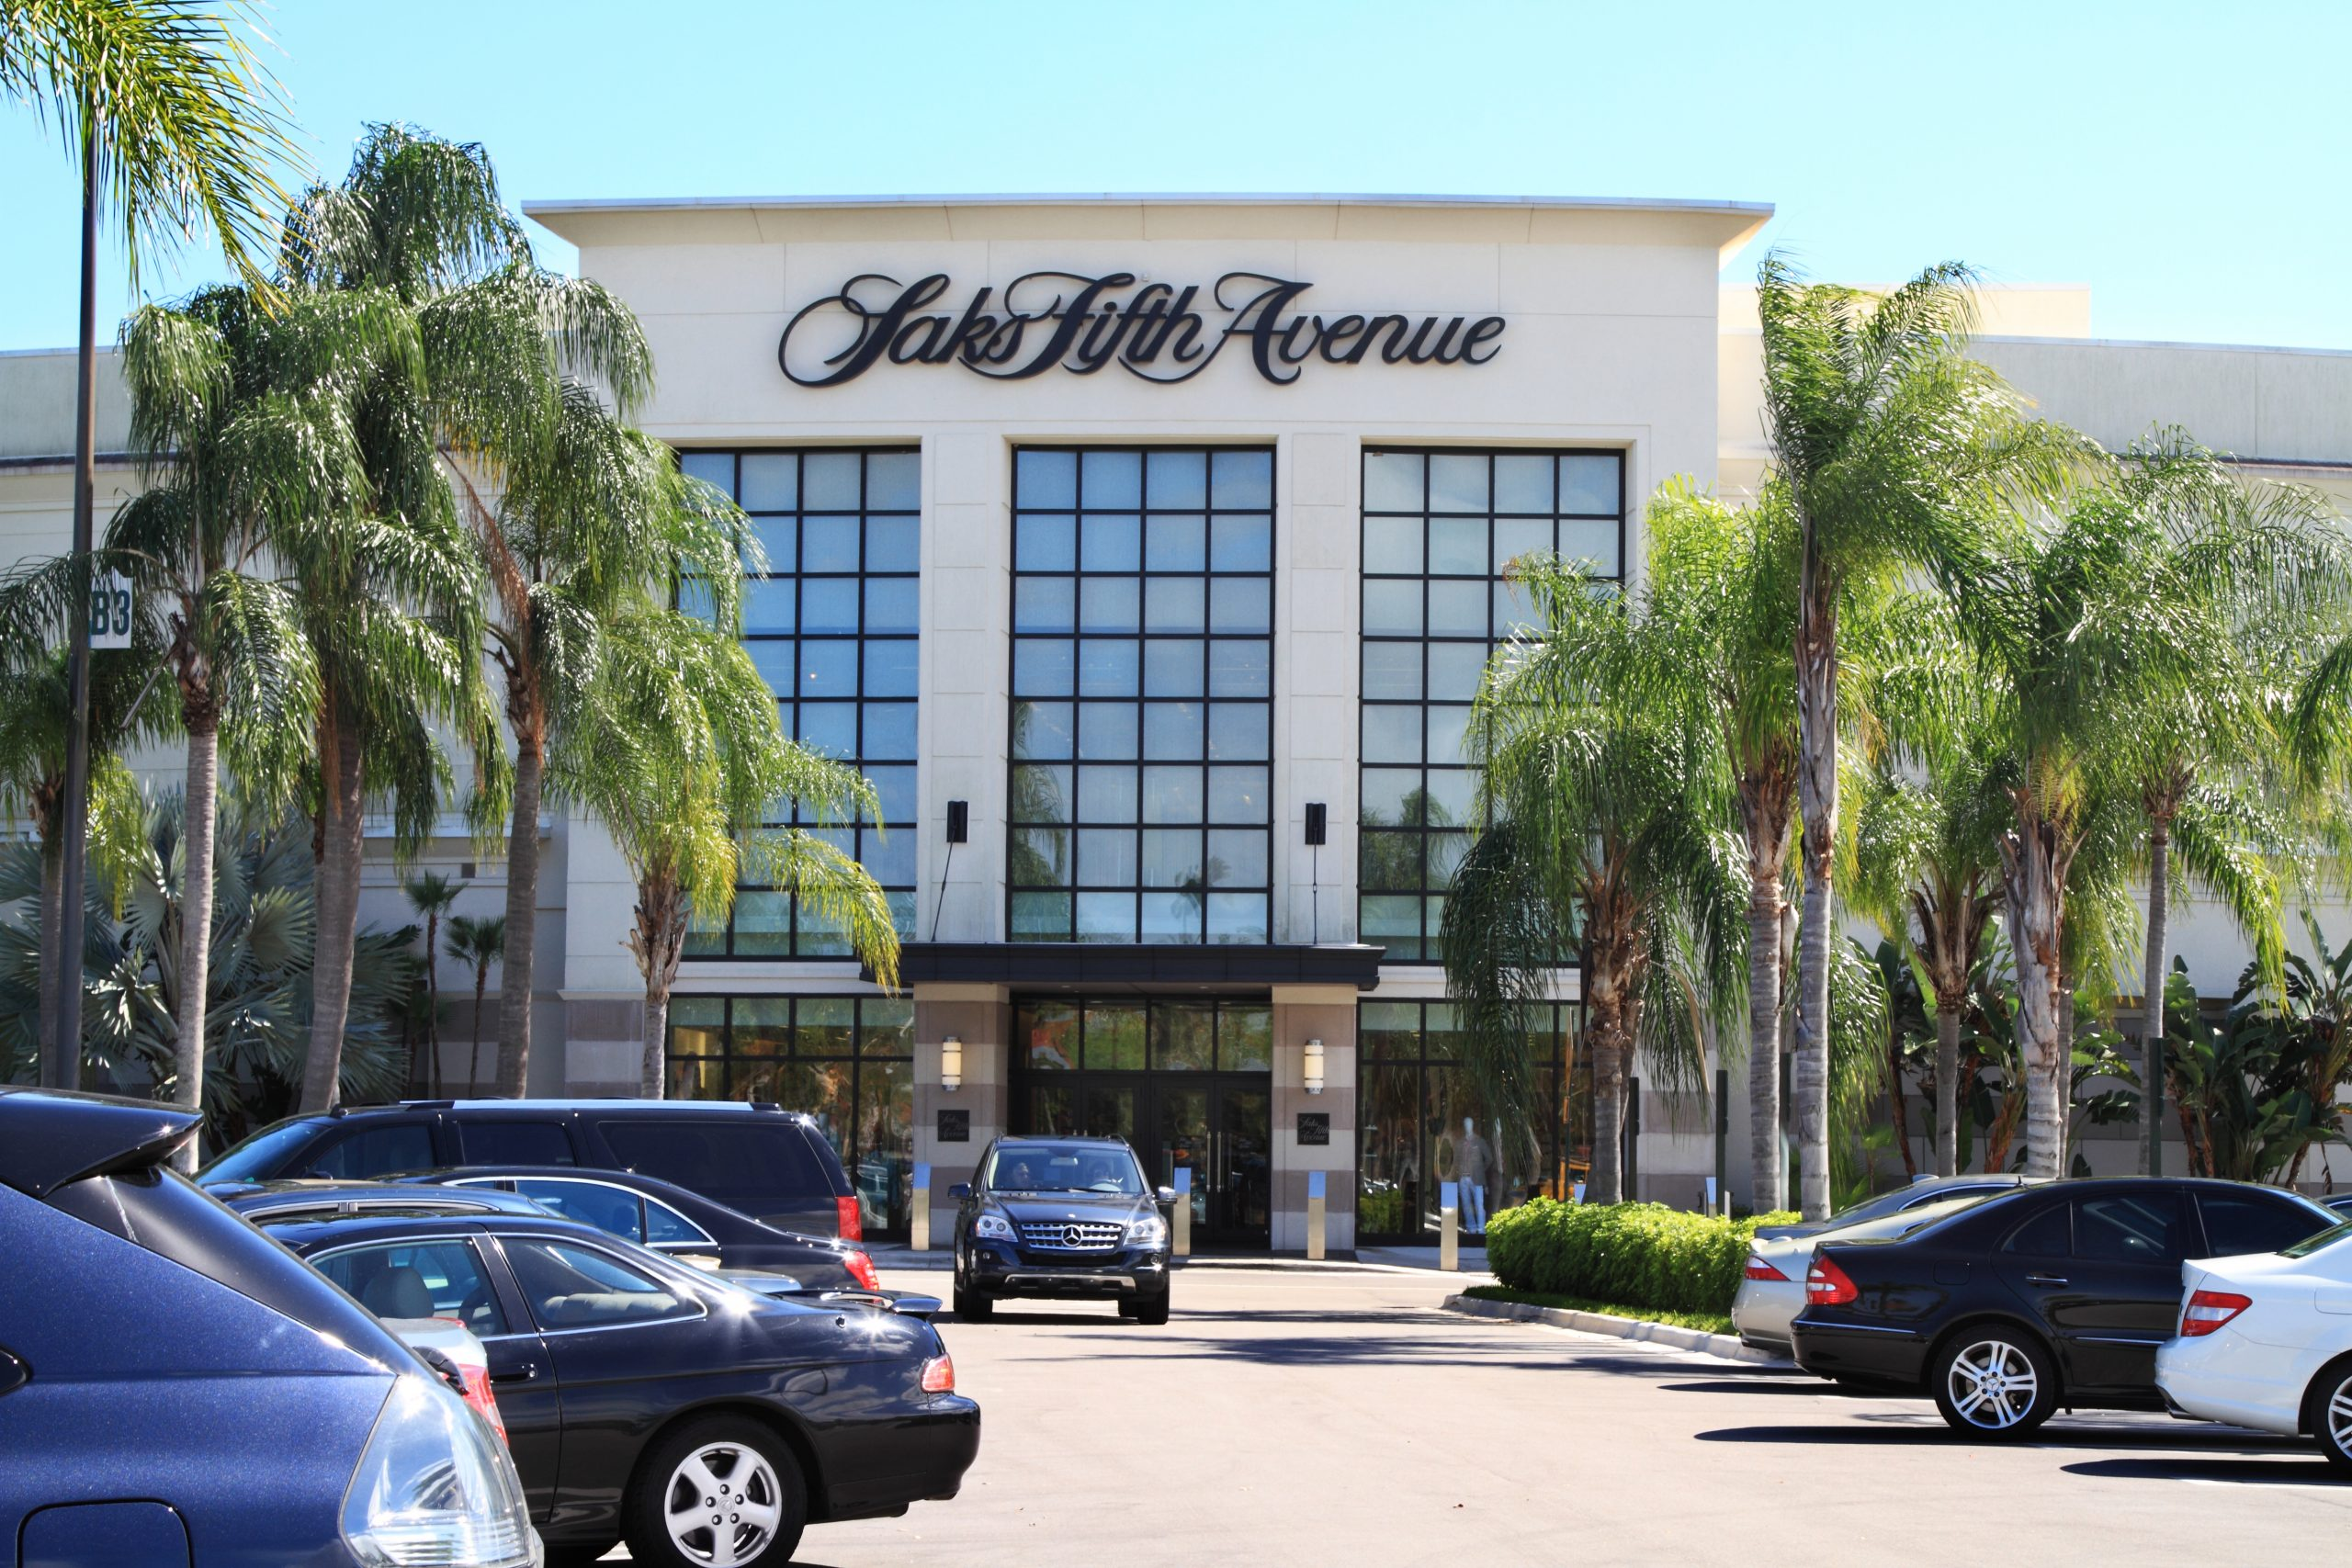 Designer shoes are majorly marked down during Saks' massive Cyber Monday sale